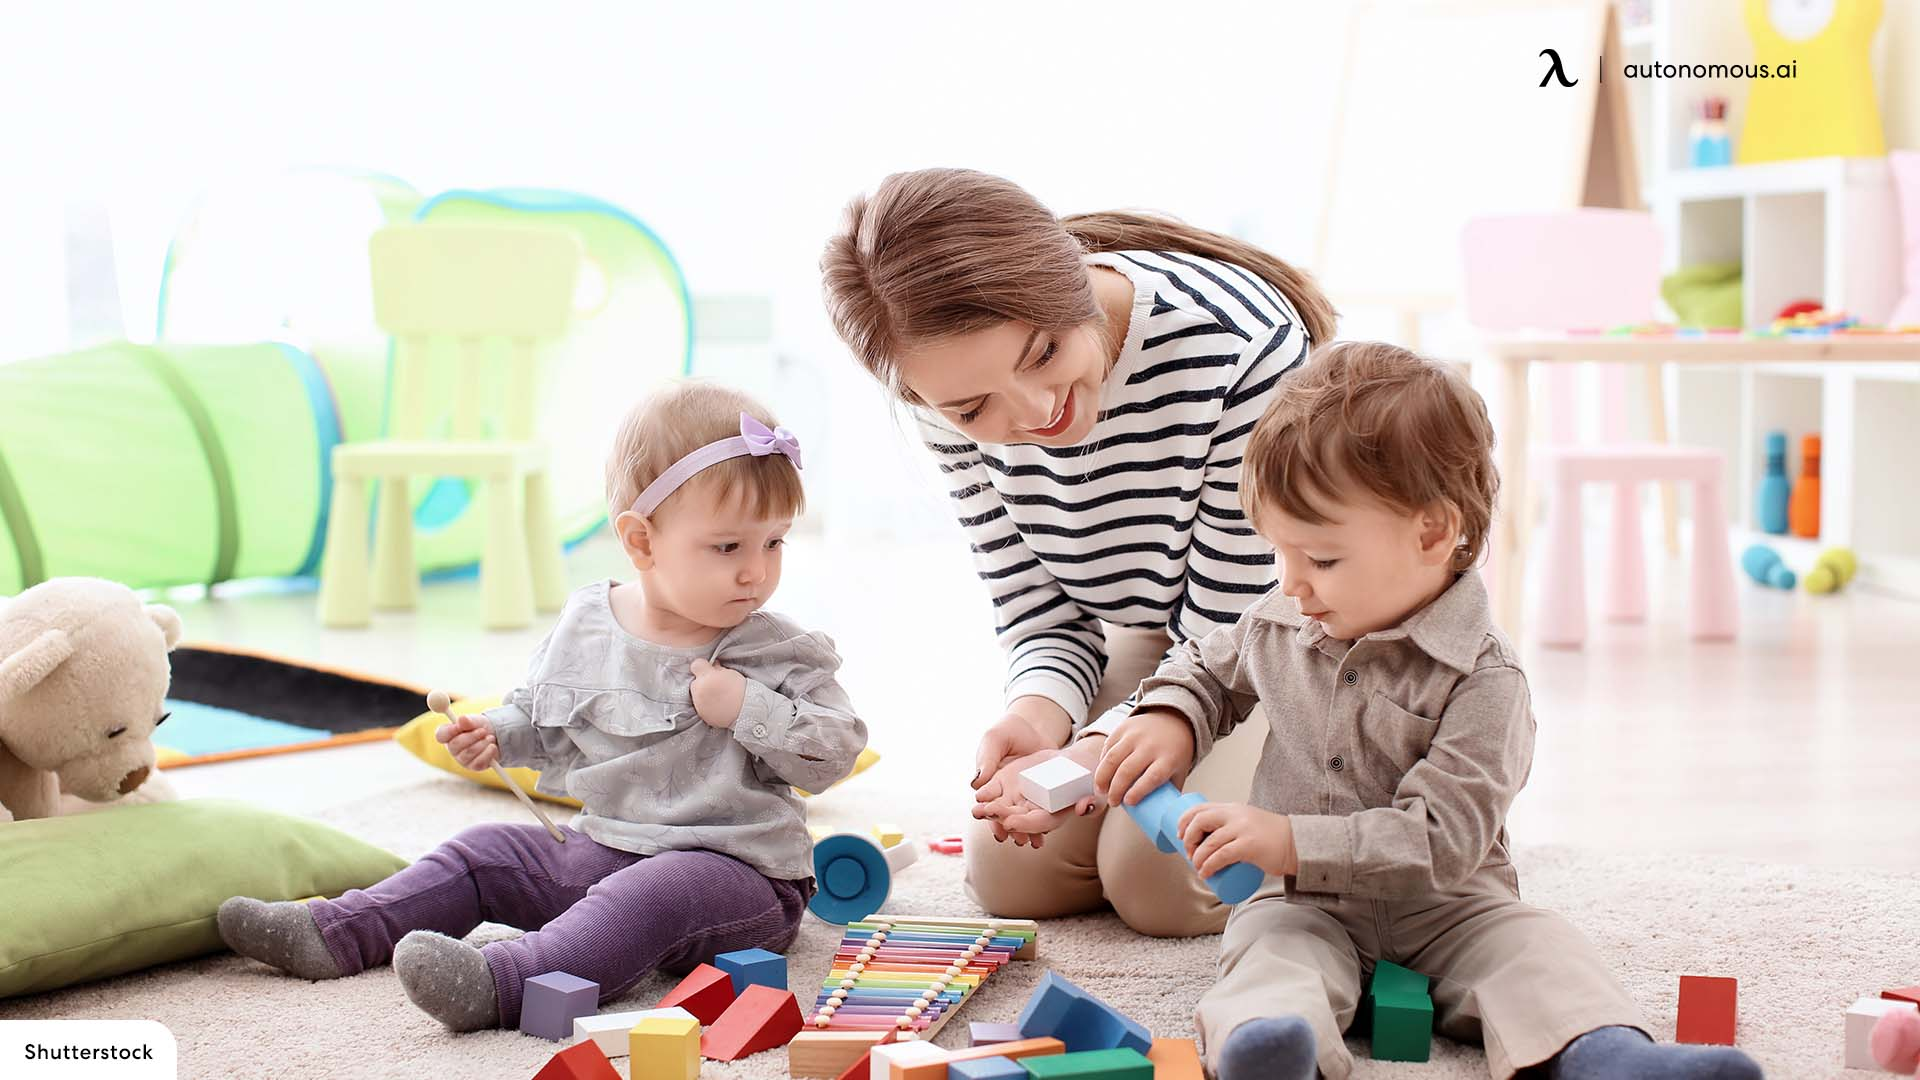 Child-Care in employee perks